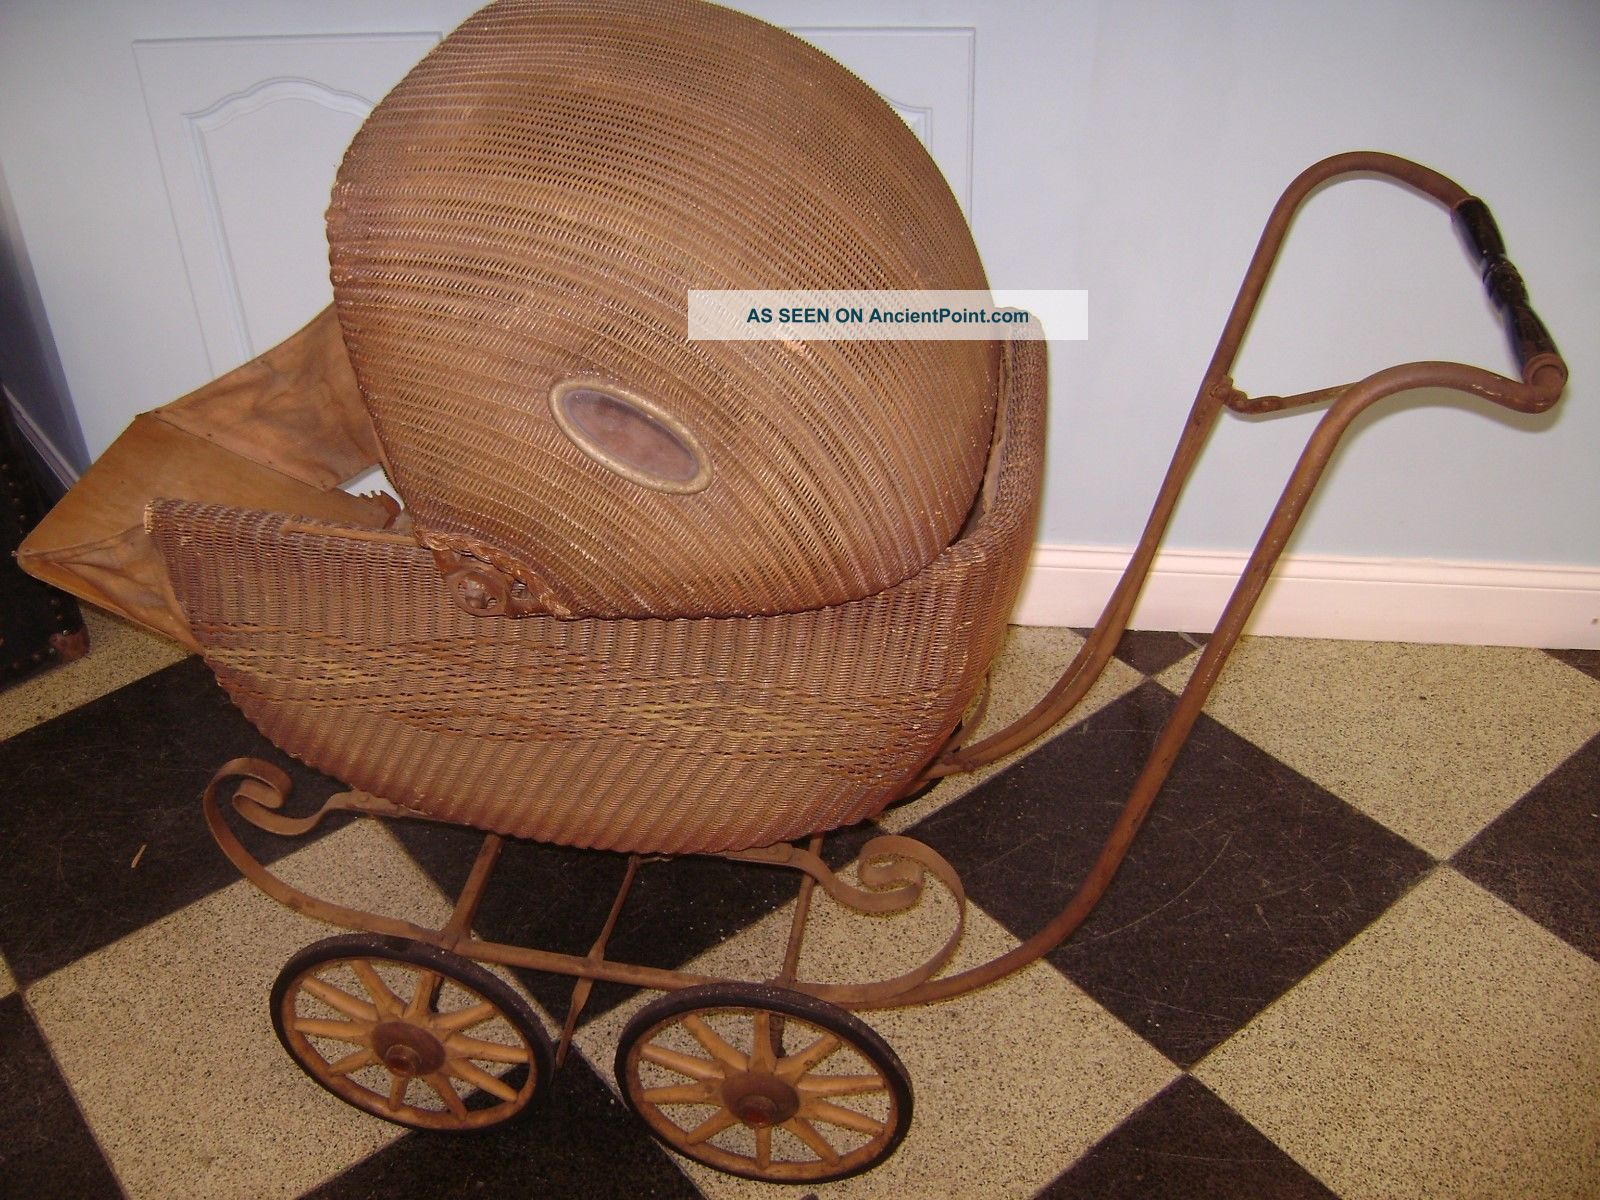 Vintage Wicker Pram Baby Buggy Carraige Stroller Dolls Toy Baby Carriages & Buggies photo